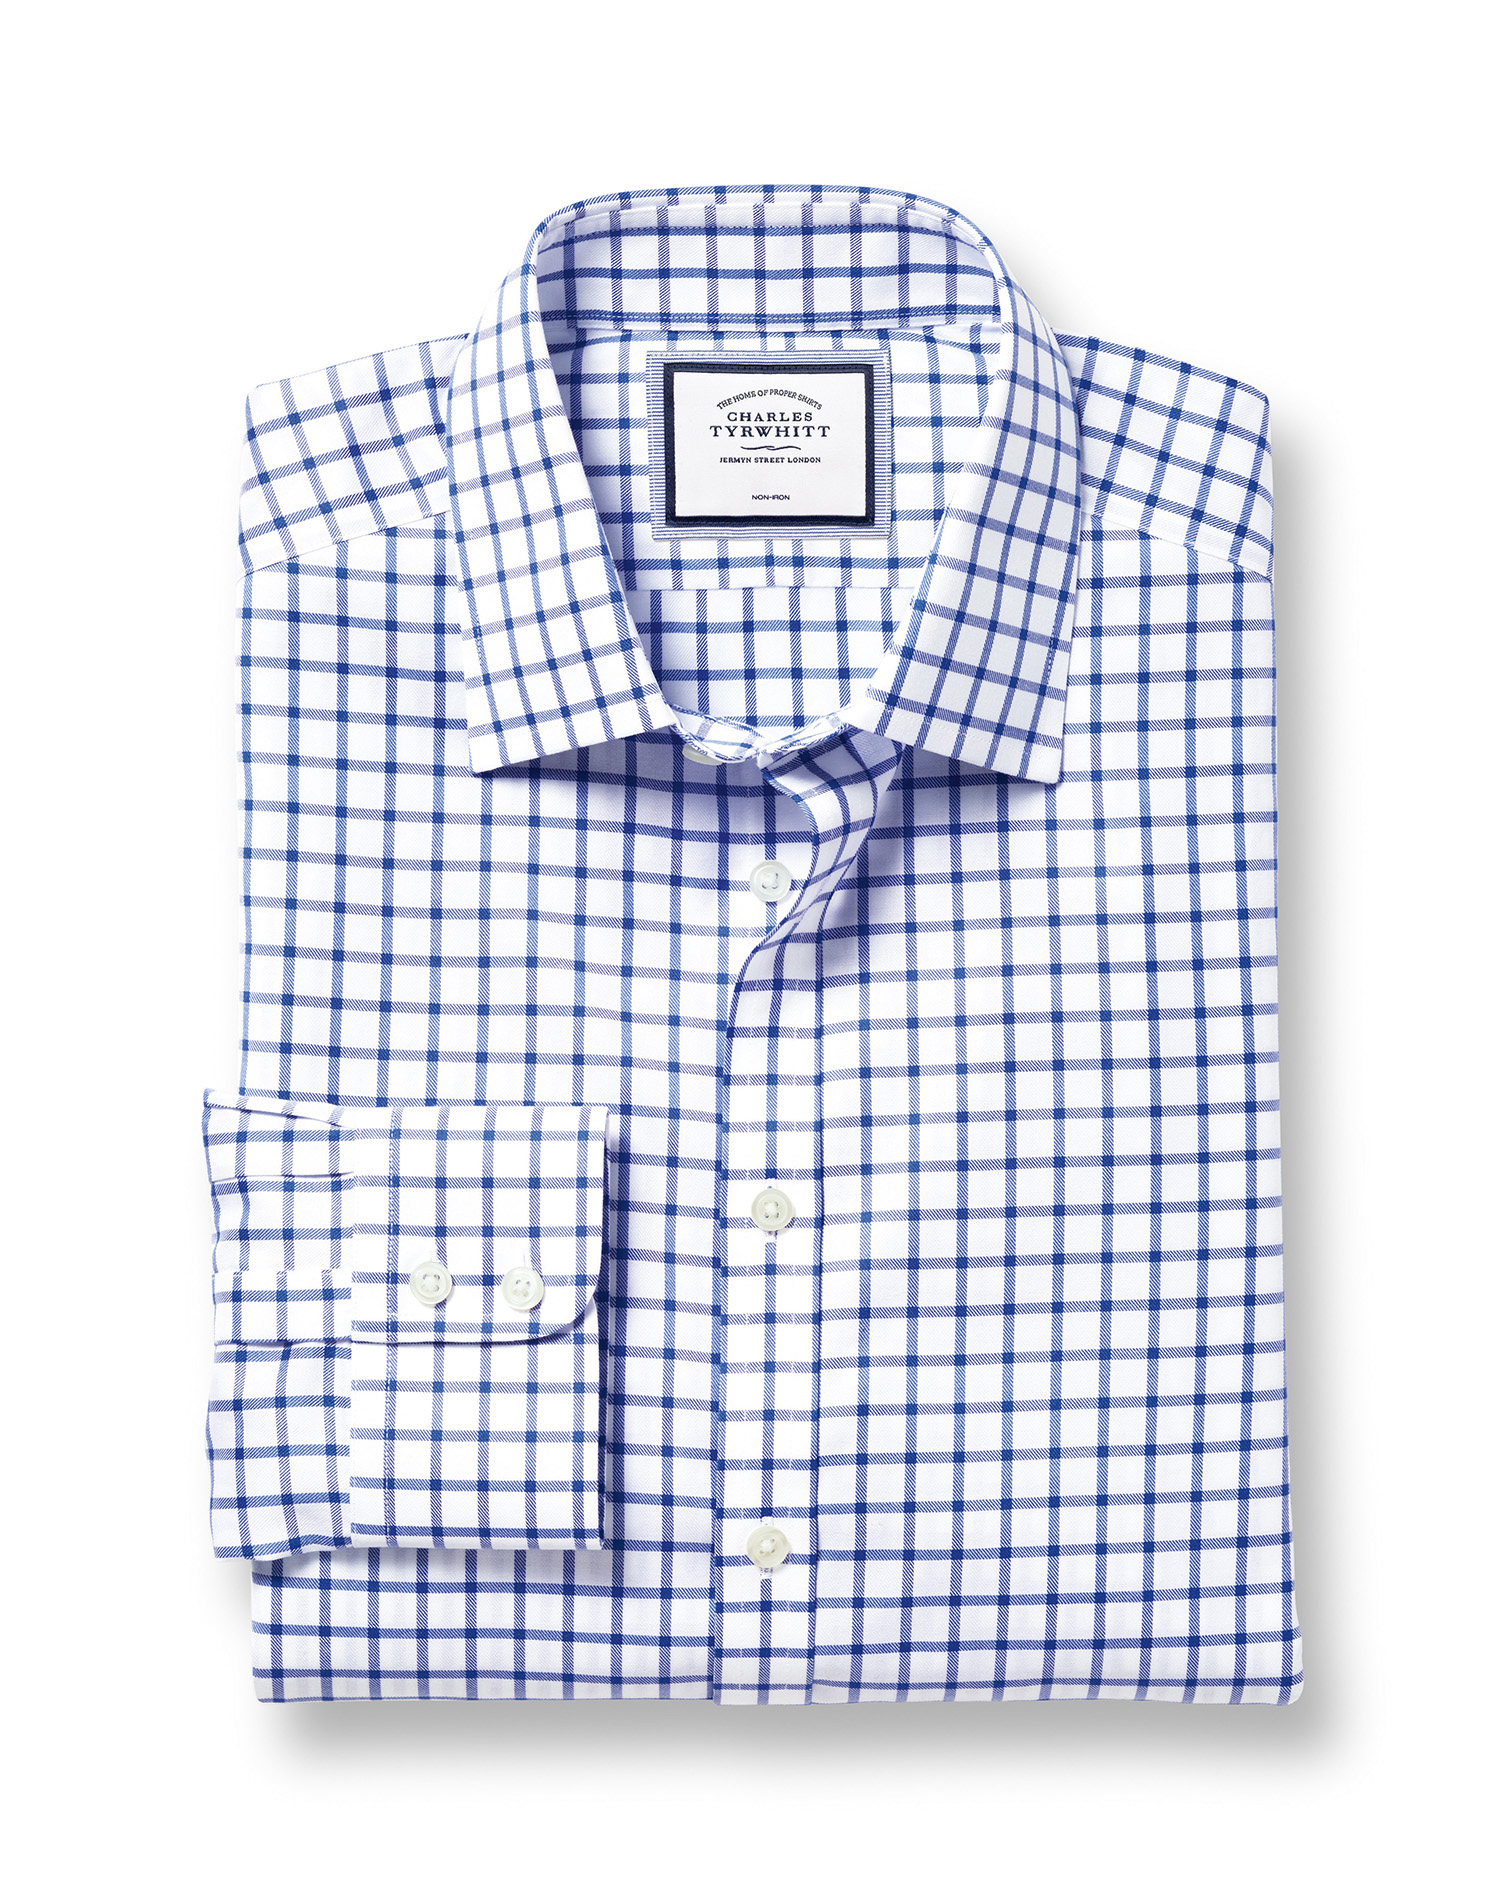 Slim Fit Non-Iron Twill Grid Check Royal Blue Cotton Formal Shirt Single Cuff Size 16/38 by Charles